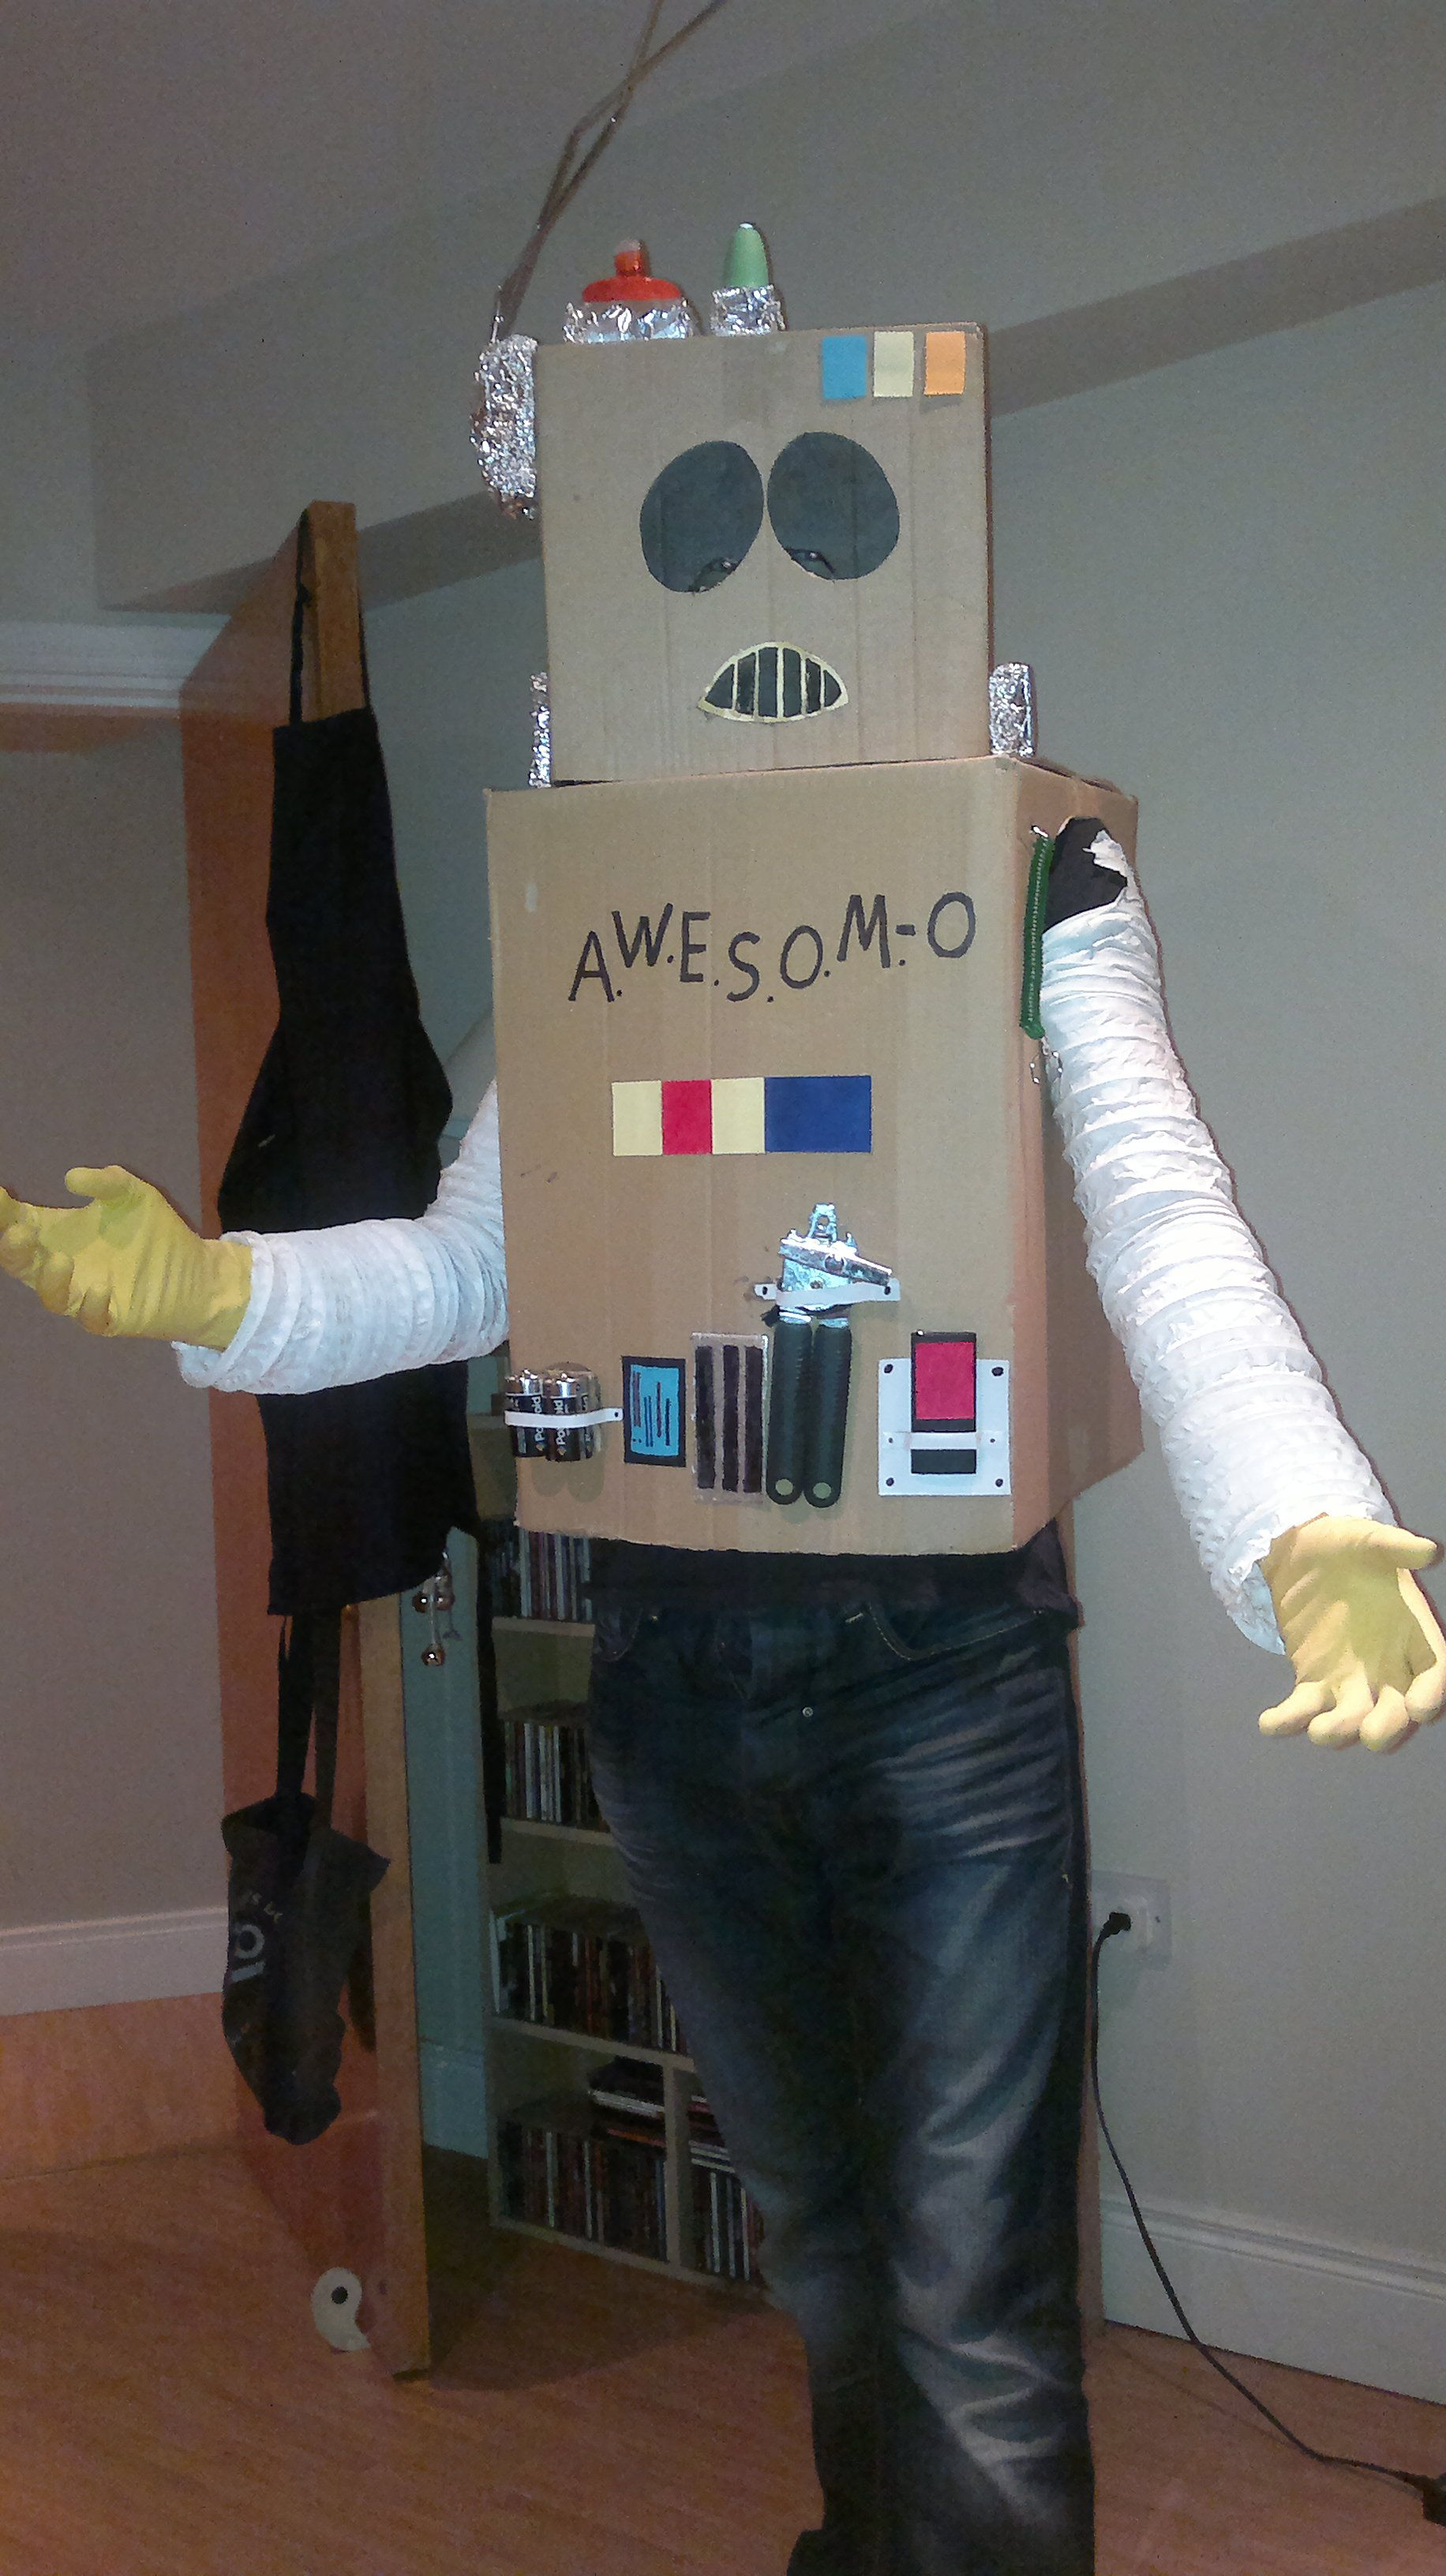 Homemade awesom o fancy dress costume from south park costume homemade awesom o fancy dress costume from south park solutioingenieria Choice Image